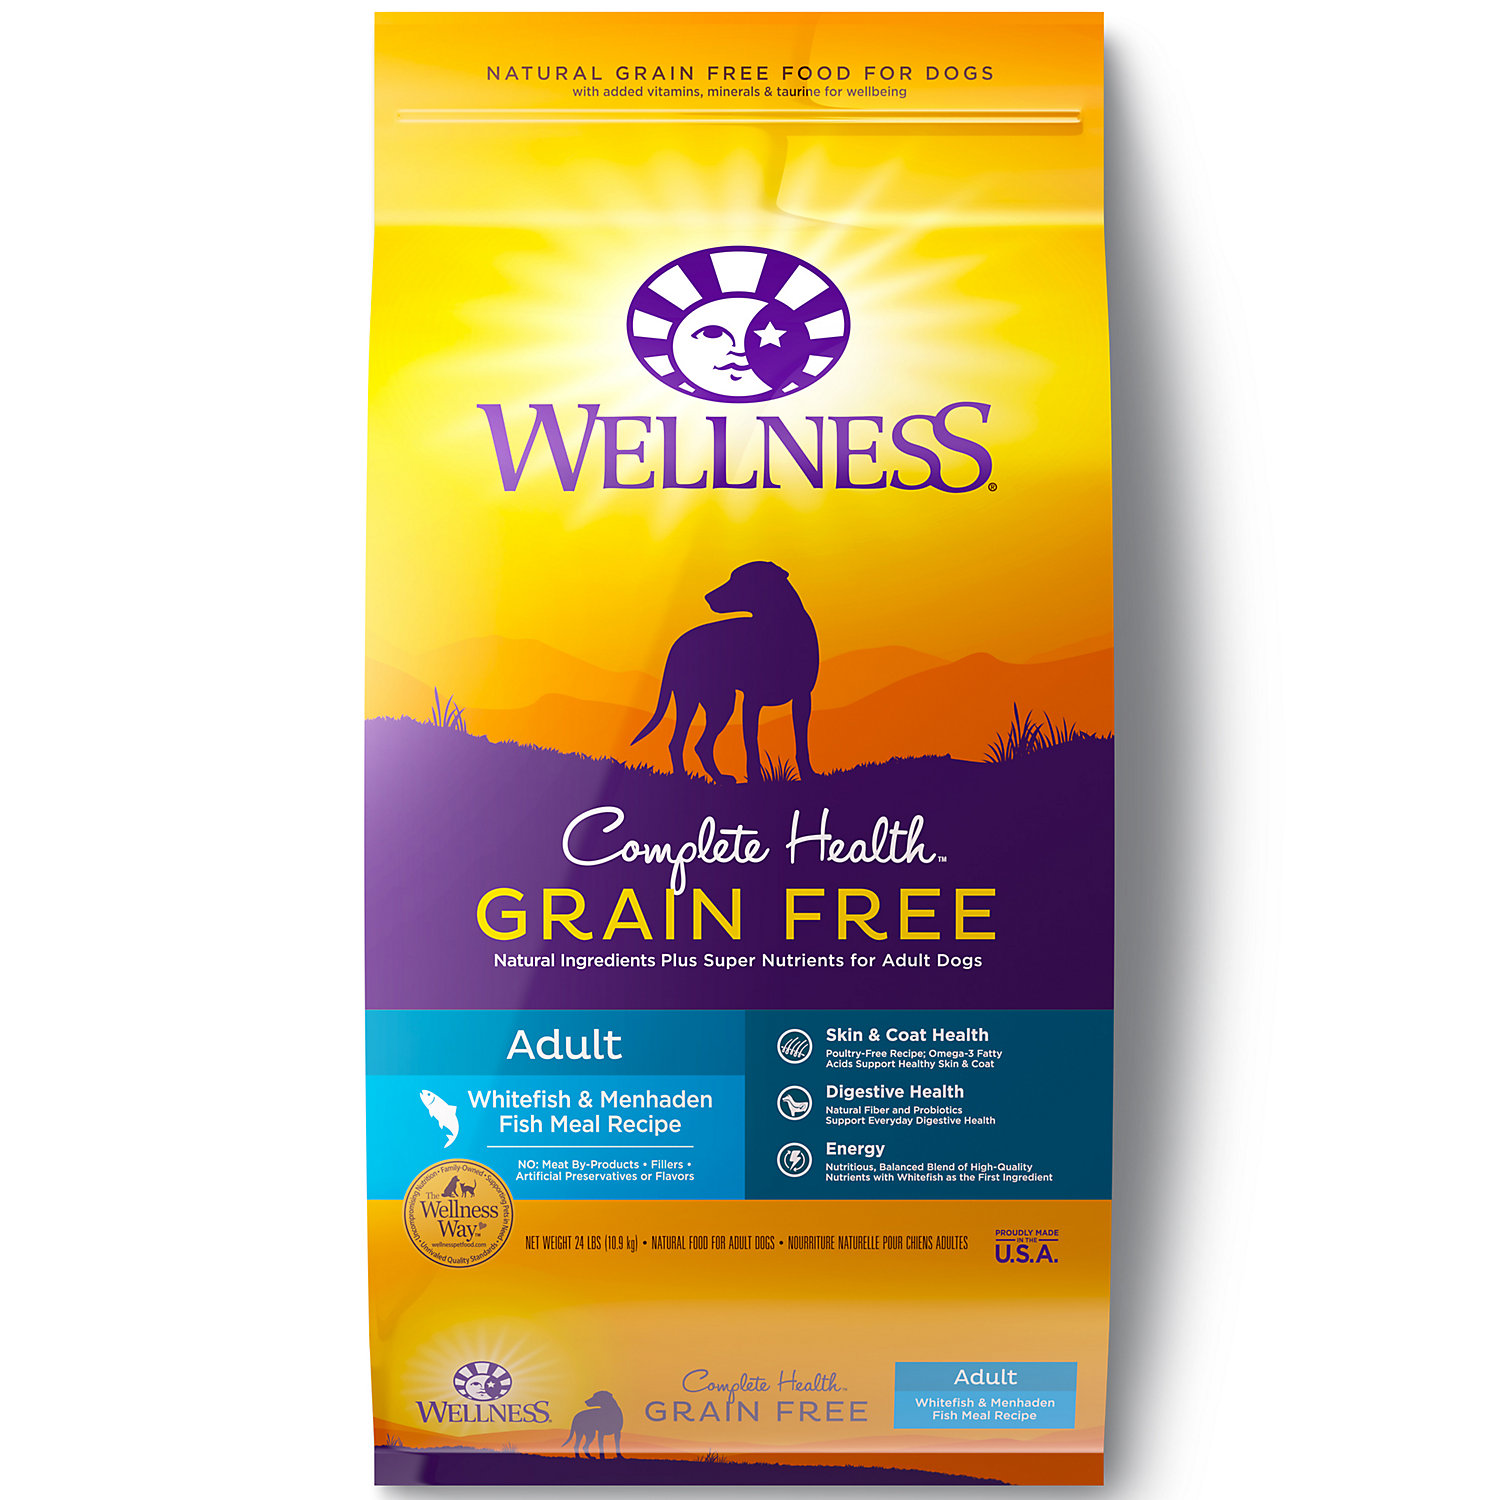 Health Grain Free Dog Food Ingredients